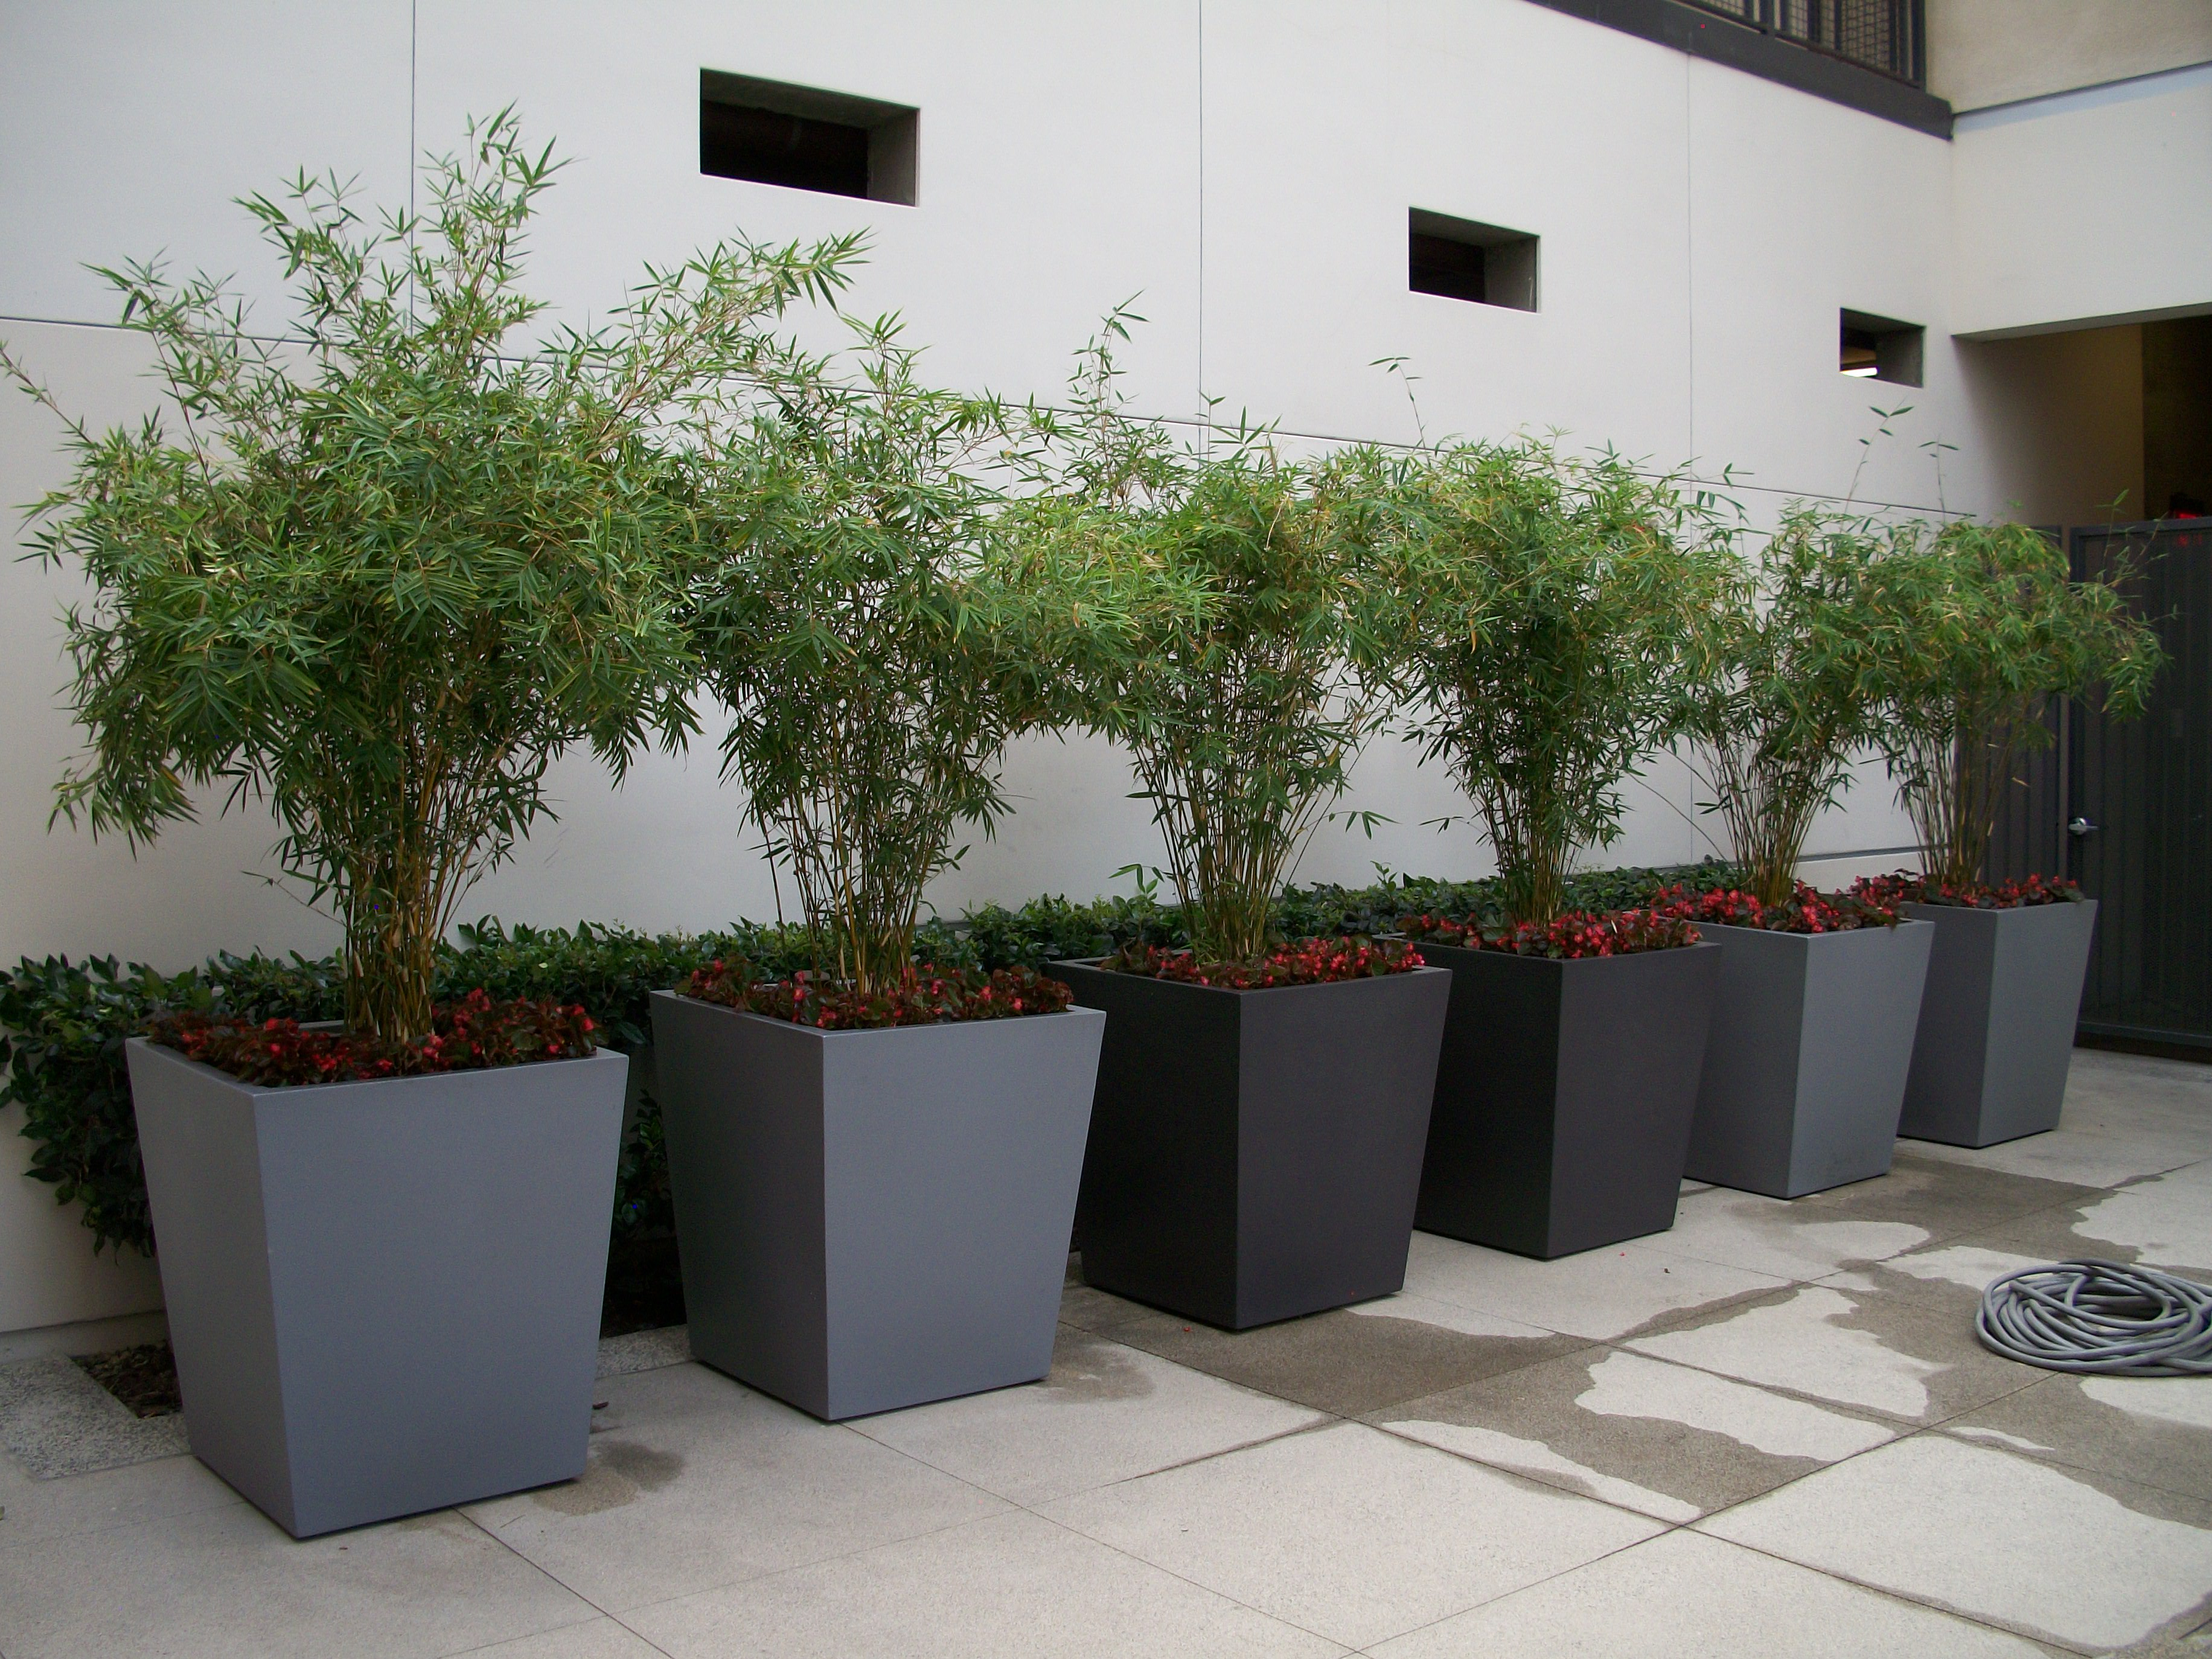 10 architectural planters award winning contemporary for Design indoor plant pots uk